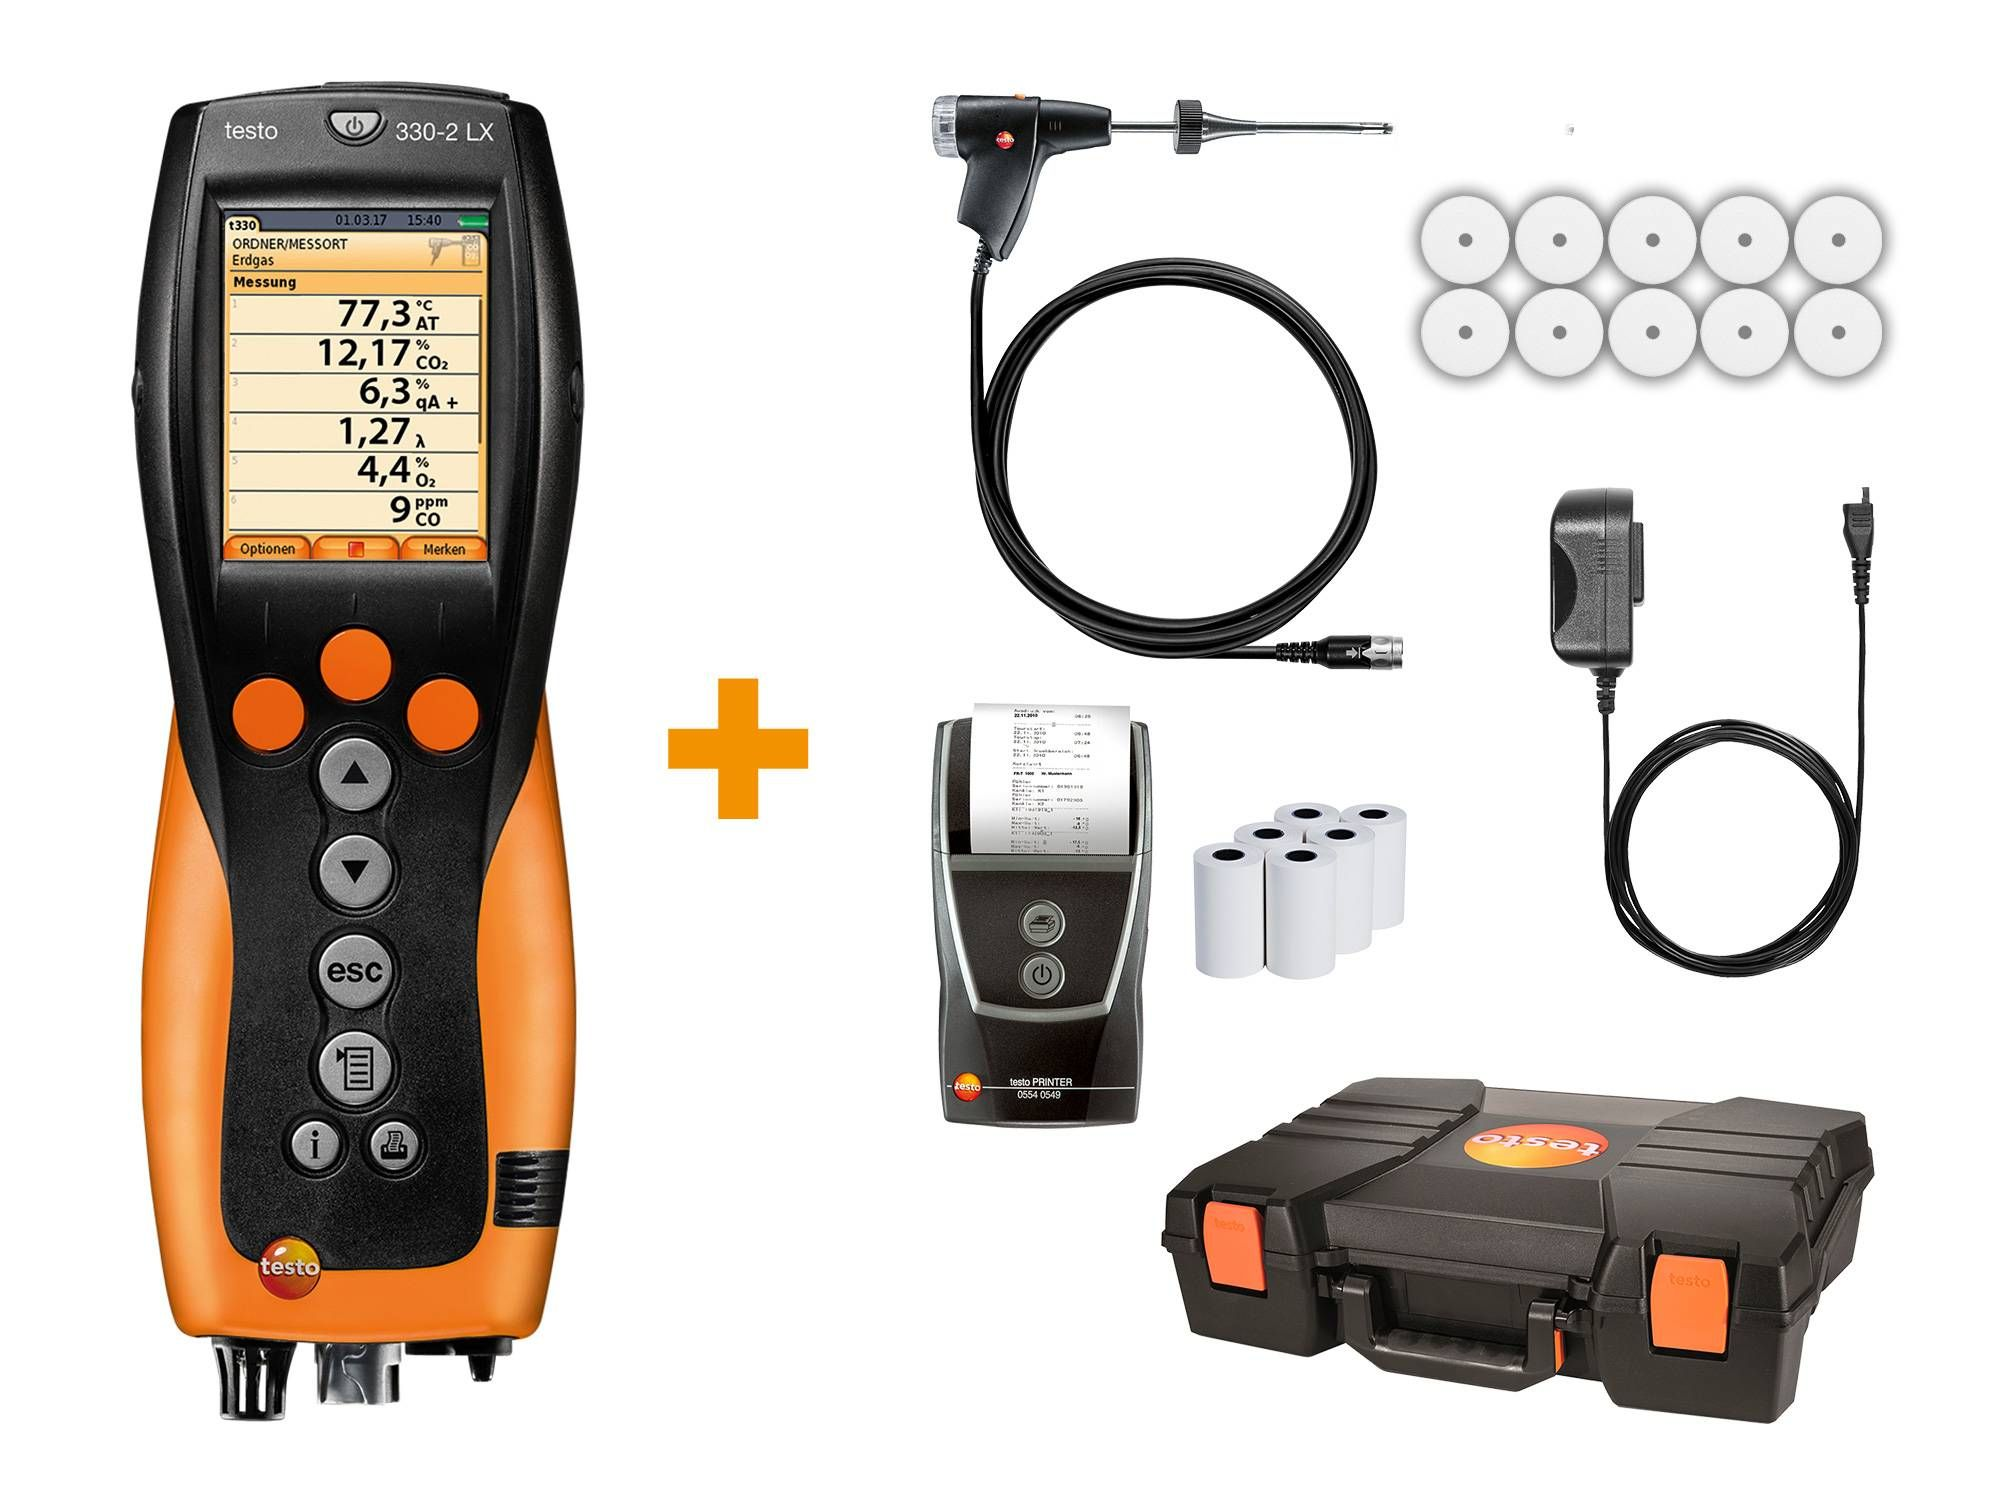 testo 330-2 LX Jubiläums-Set